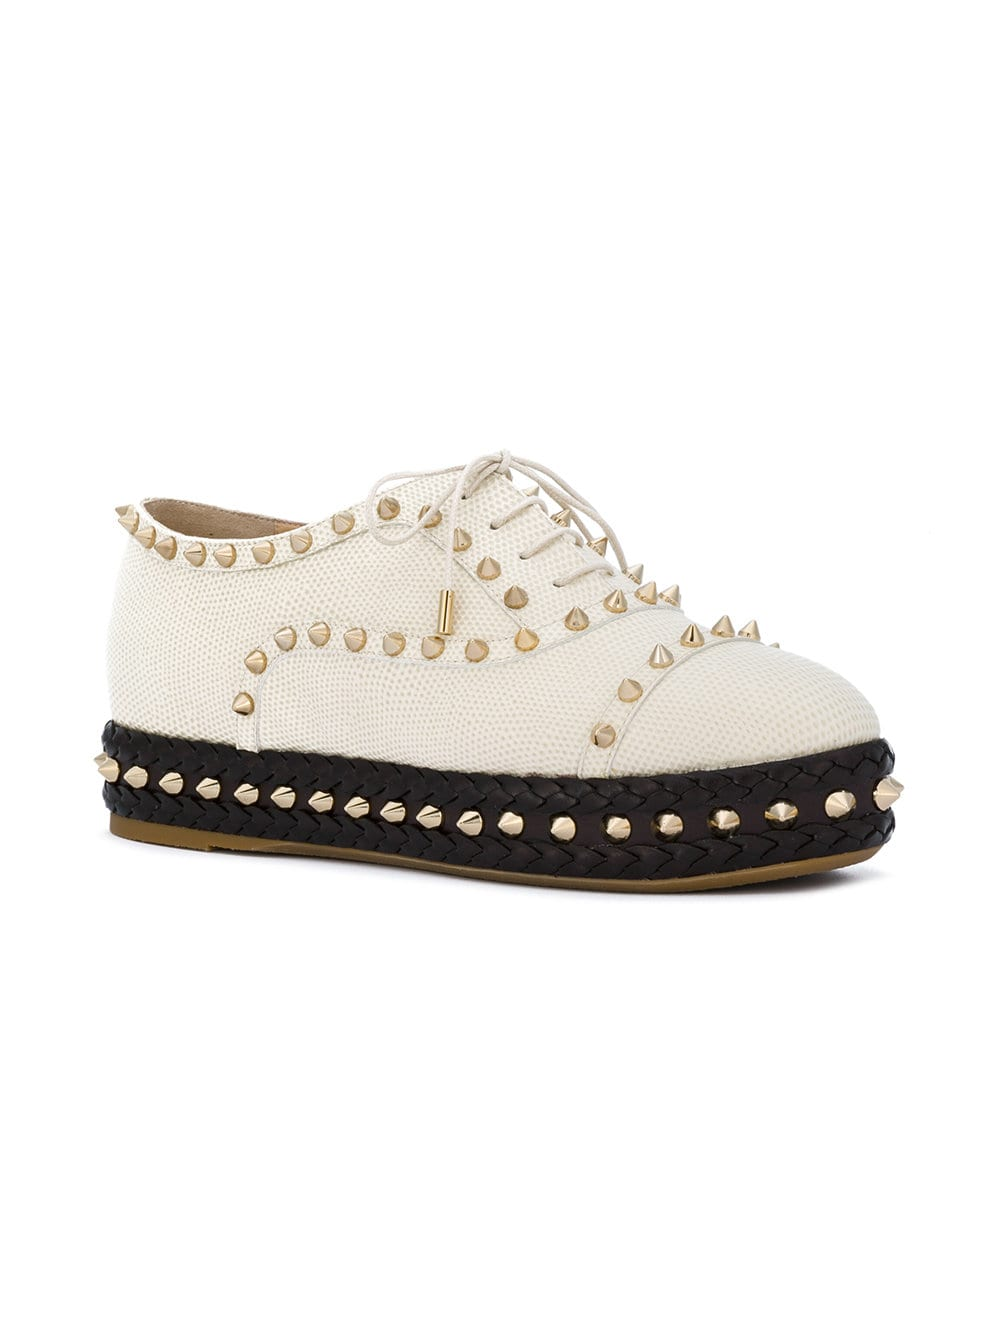 Studded platform shoes